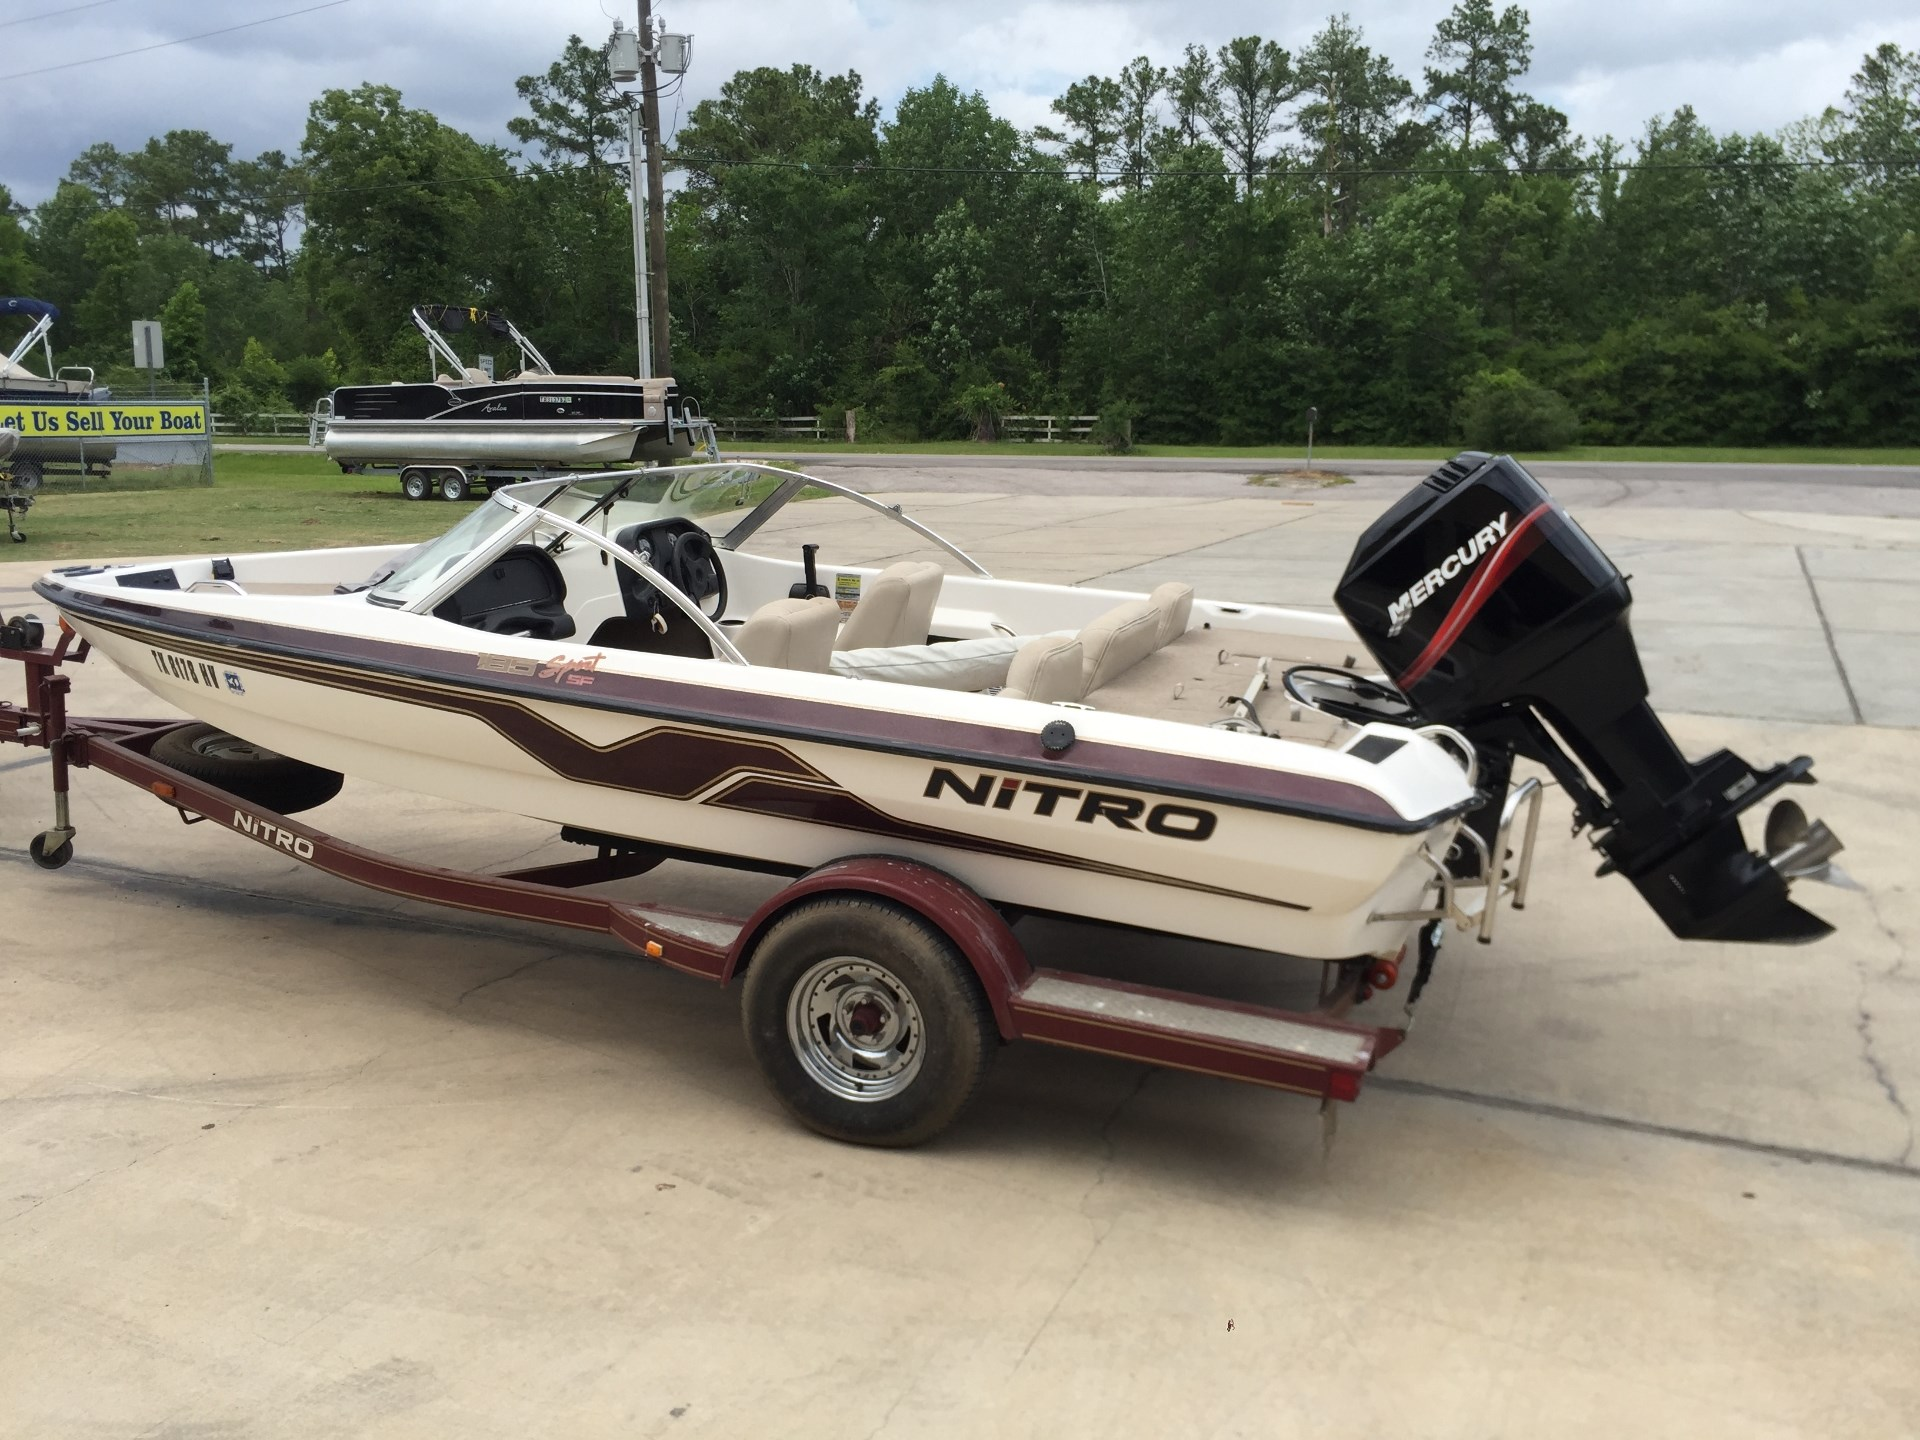 Used Ski and Fish Nitro boats for sale - boats.com